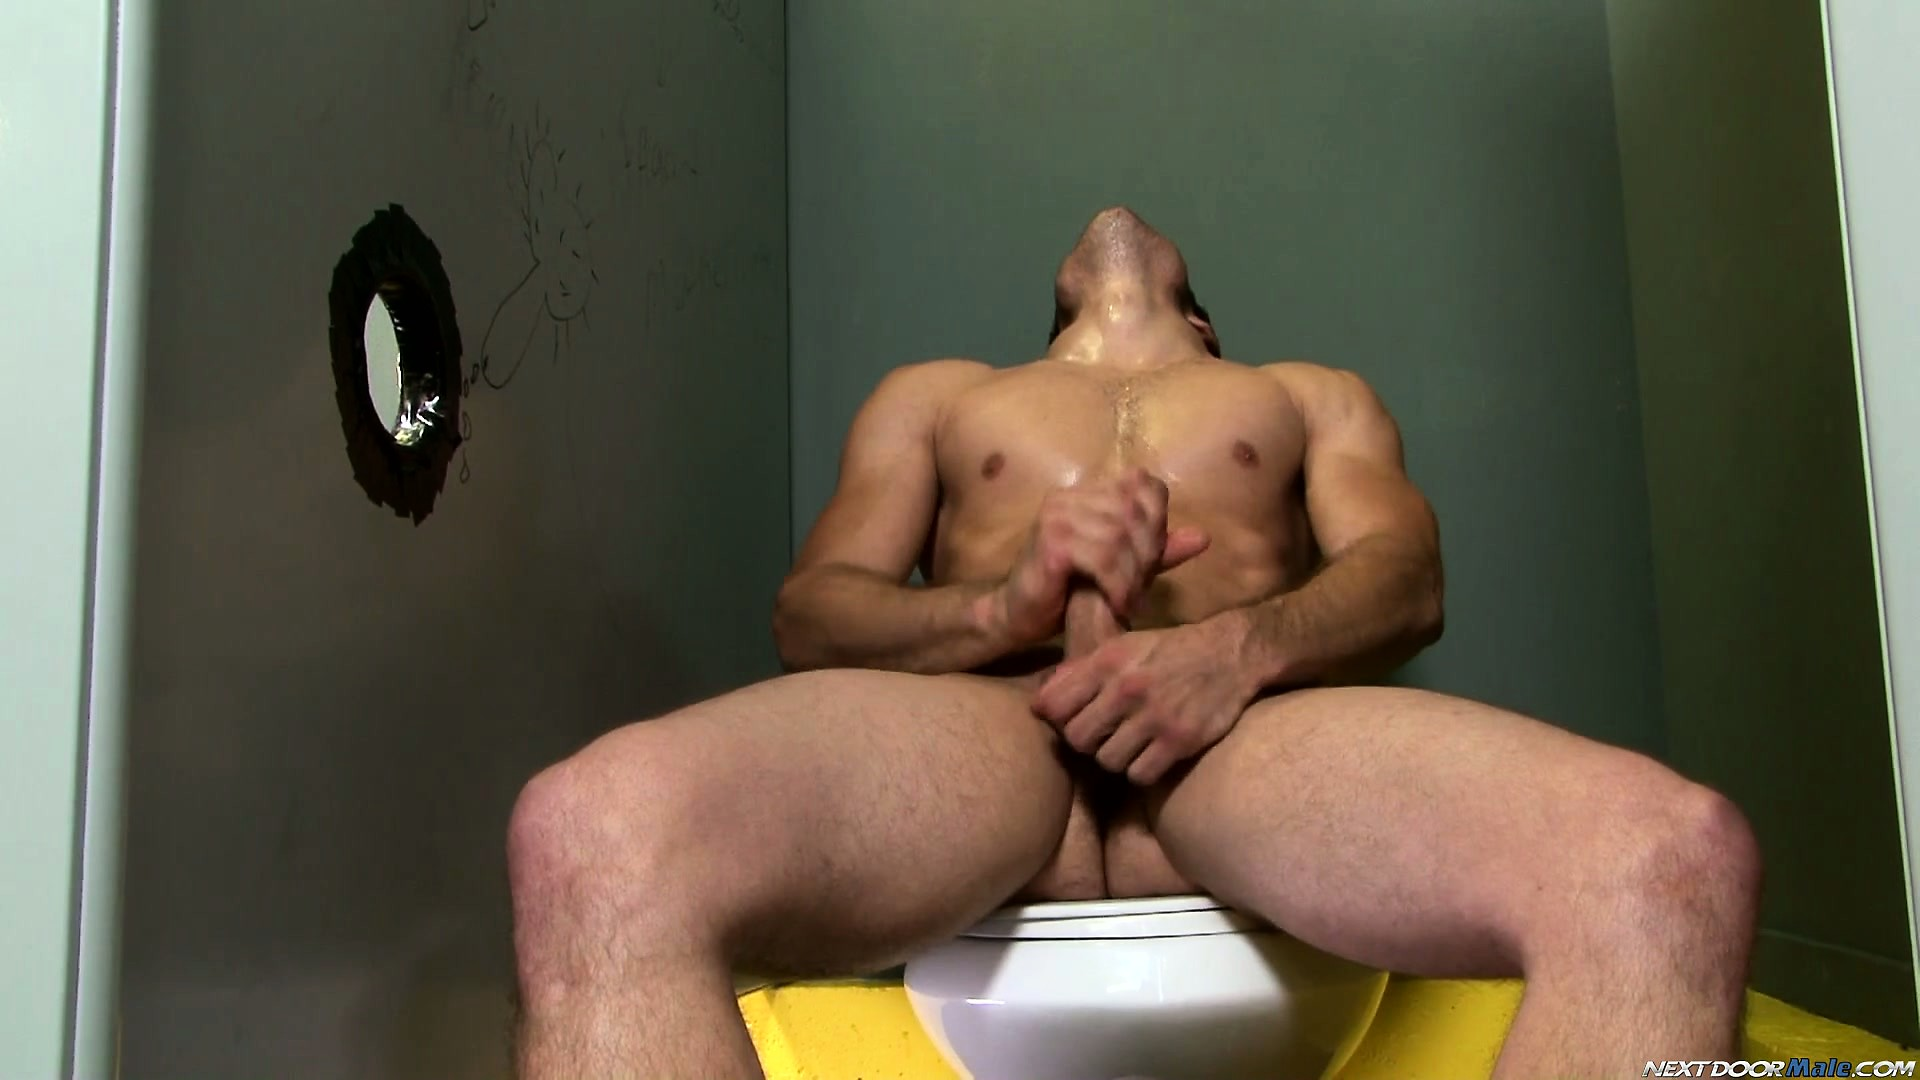 Porno Video of The Intensity Jack Puts Into Pleasing Himself Revels How Much He Loves To Masturbate